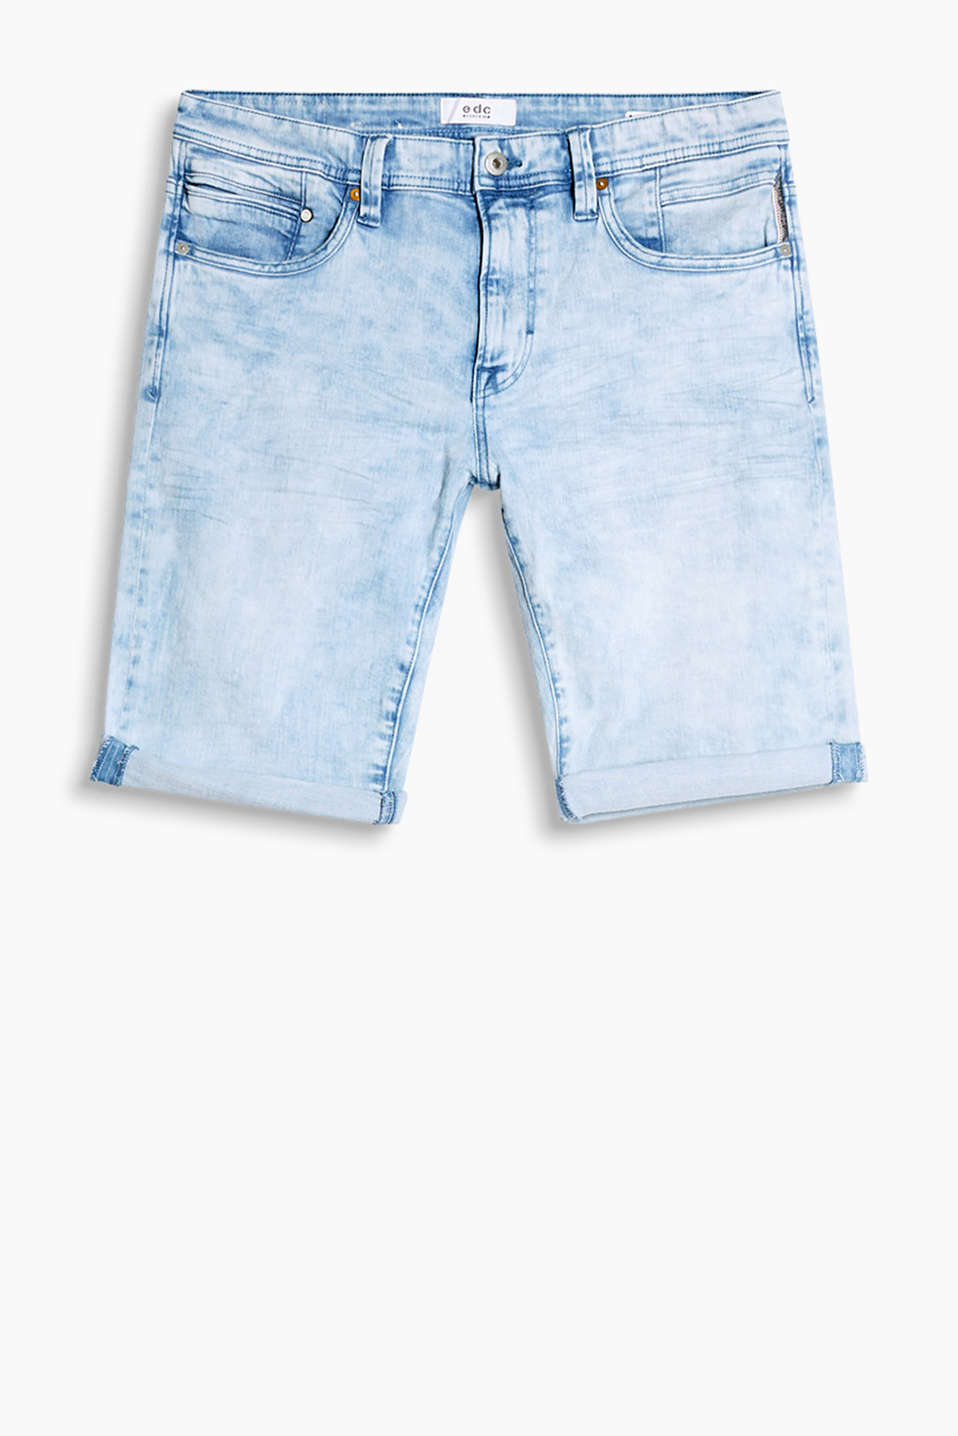 Bleached Bermudas in stretch denim with bold wrinkled effects